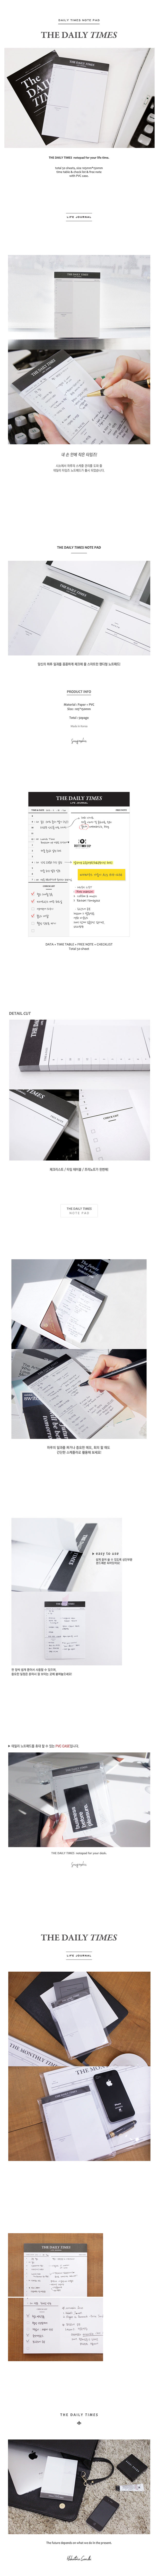 the daily times daily scheduler day planner desktop handheld